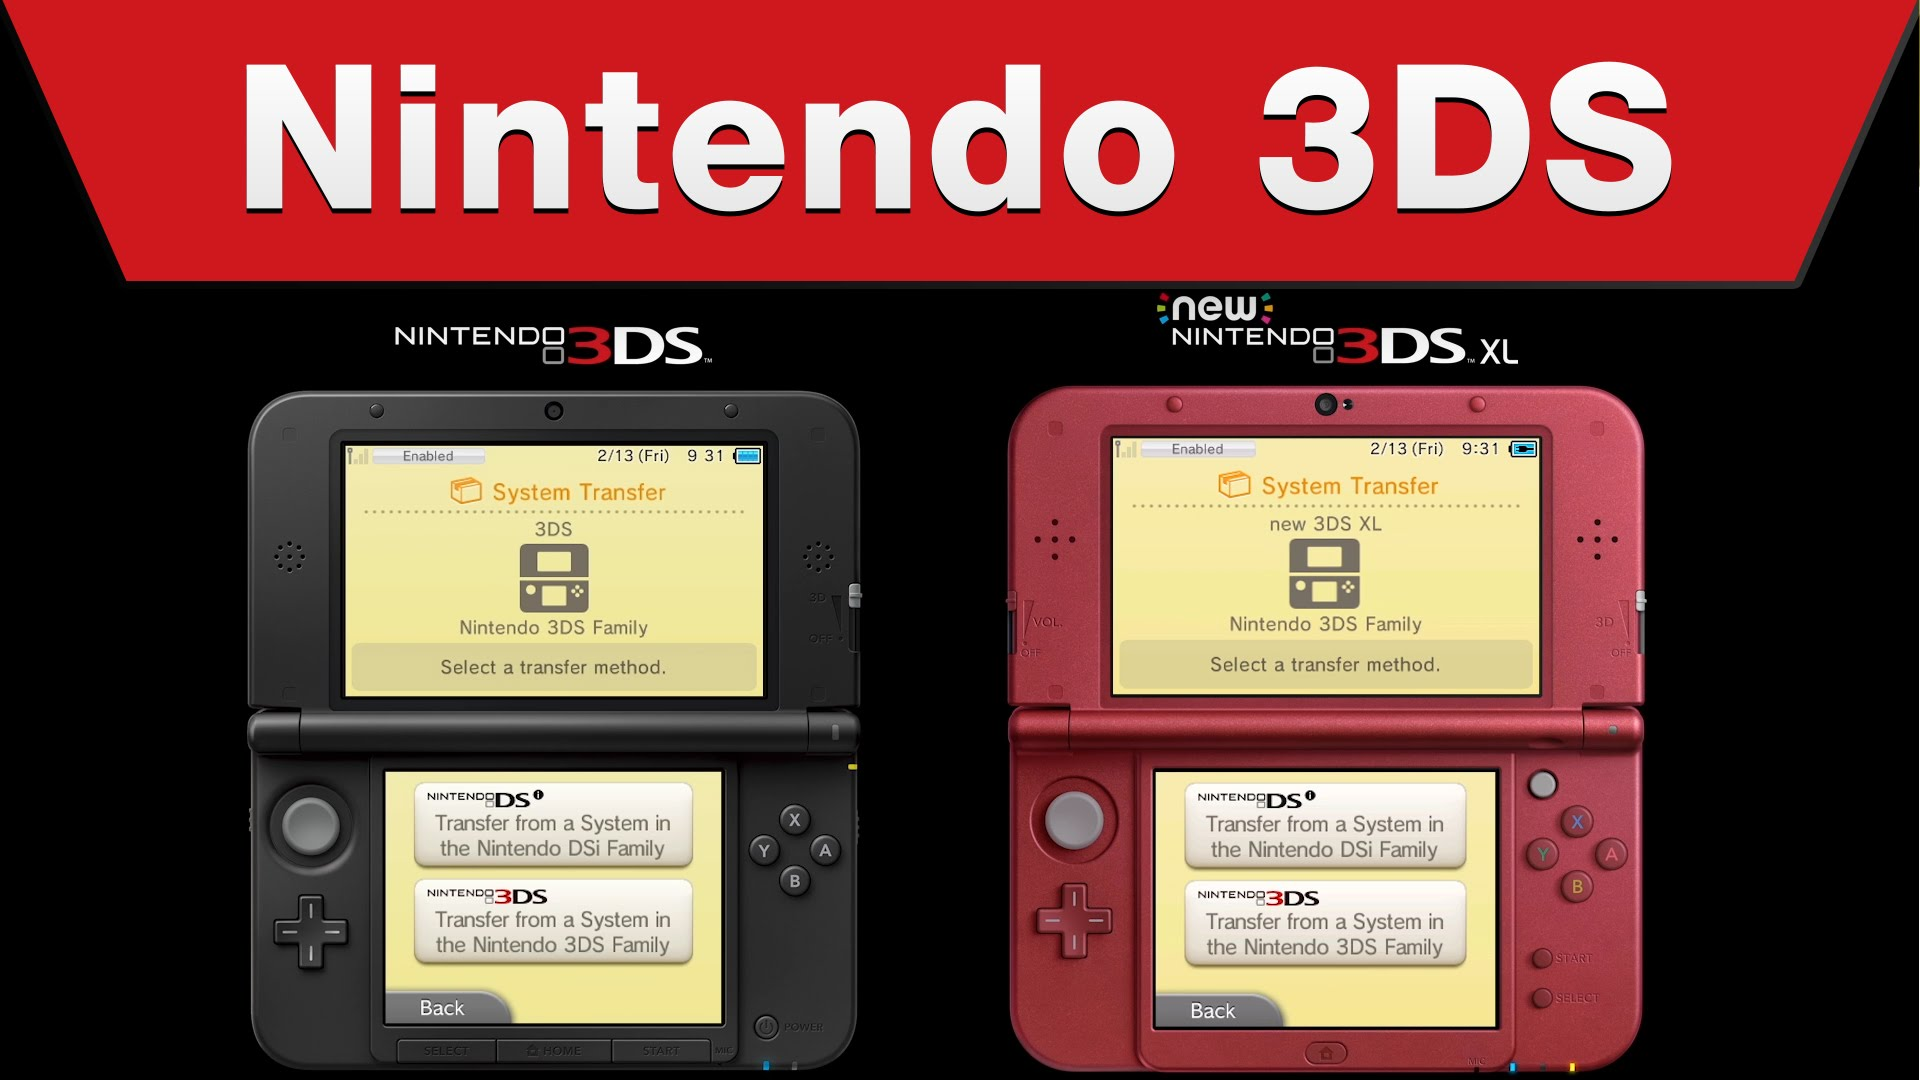 Nintendo Releases 3DS to New 3DS Transfer Video - Requires a Computer, Philips Screwdriver, and More